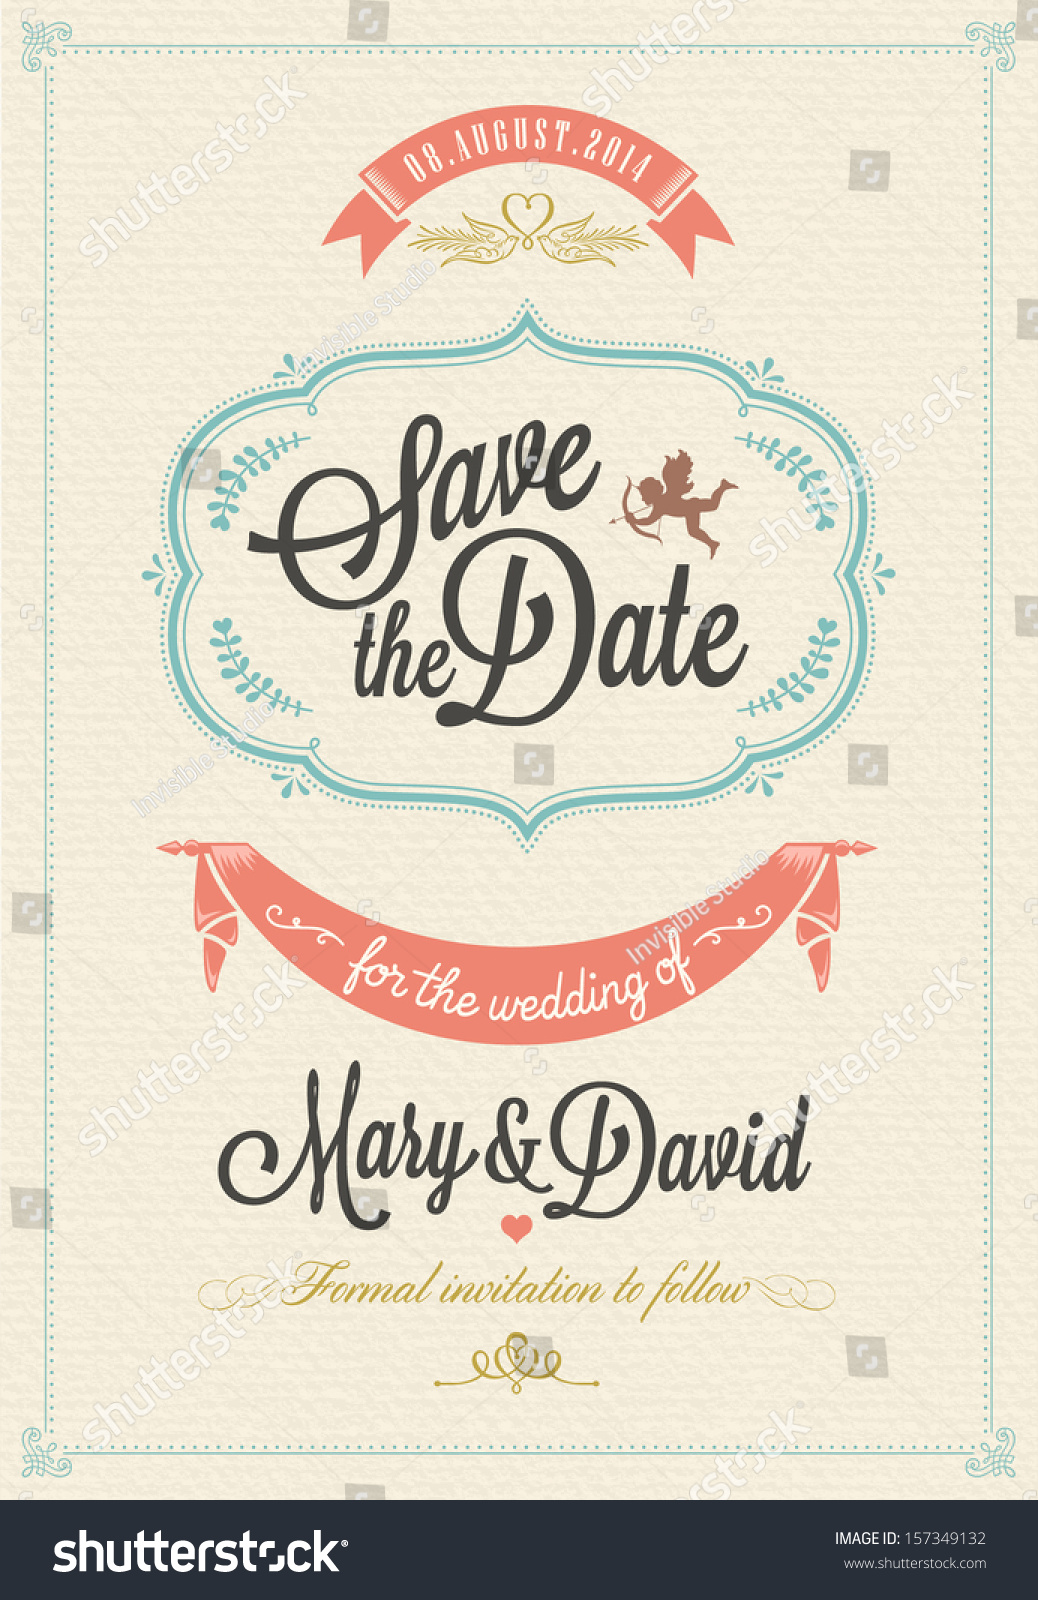 Save the date wedding invitation card stock vector for Save the date wedding